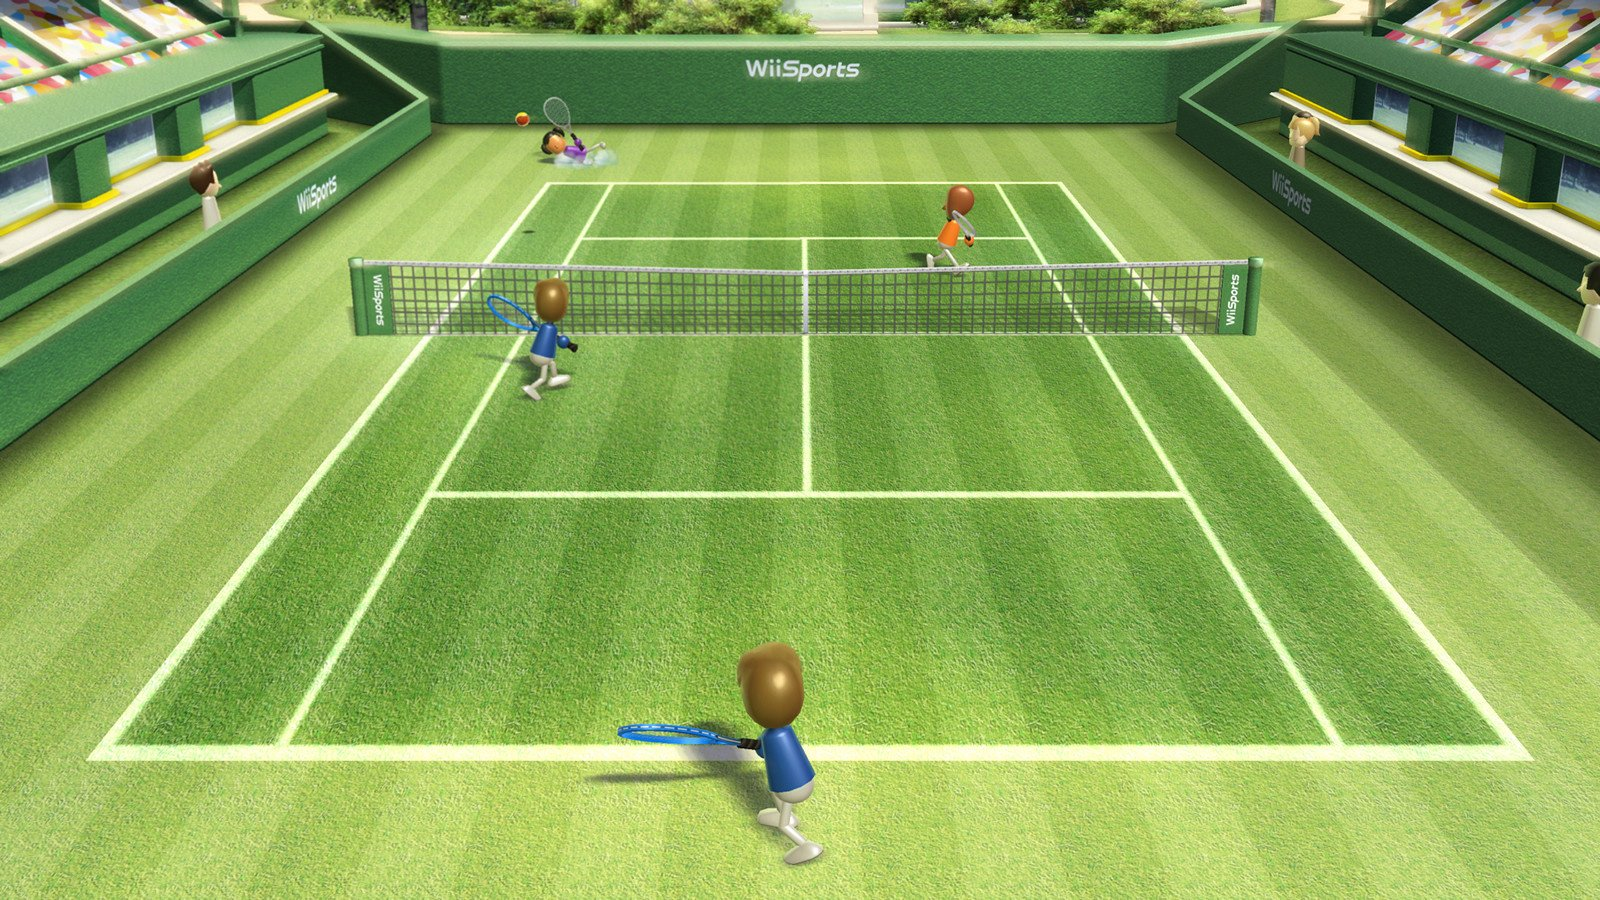 The Wii Sports theme is still a complete banger, and this video proves it screenshot